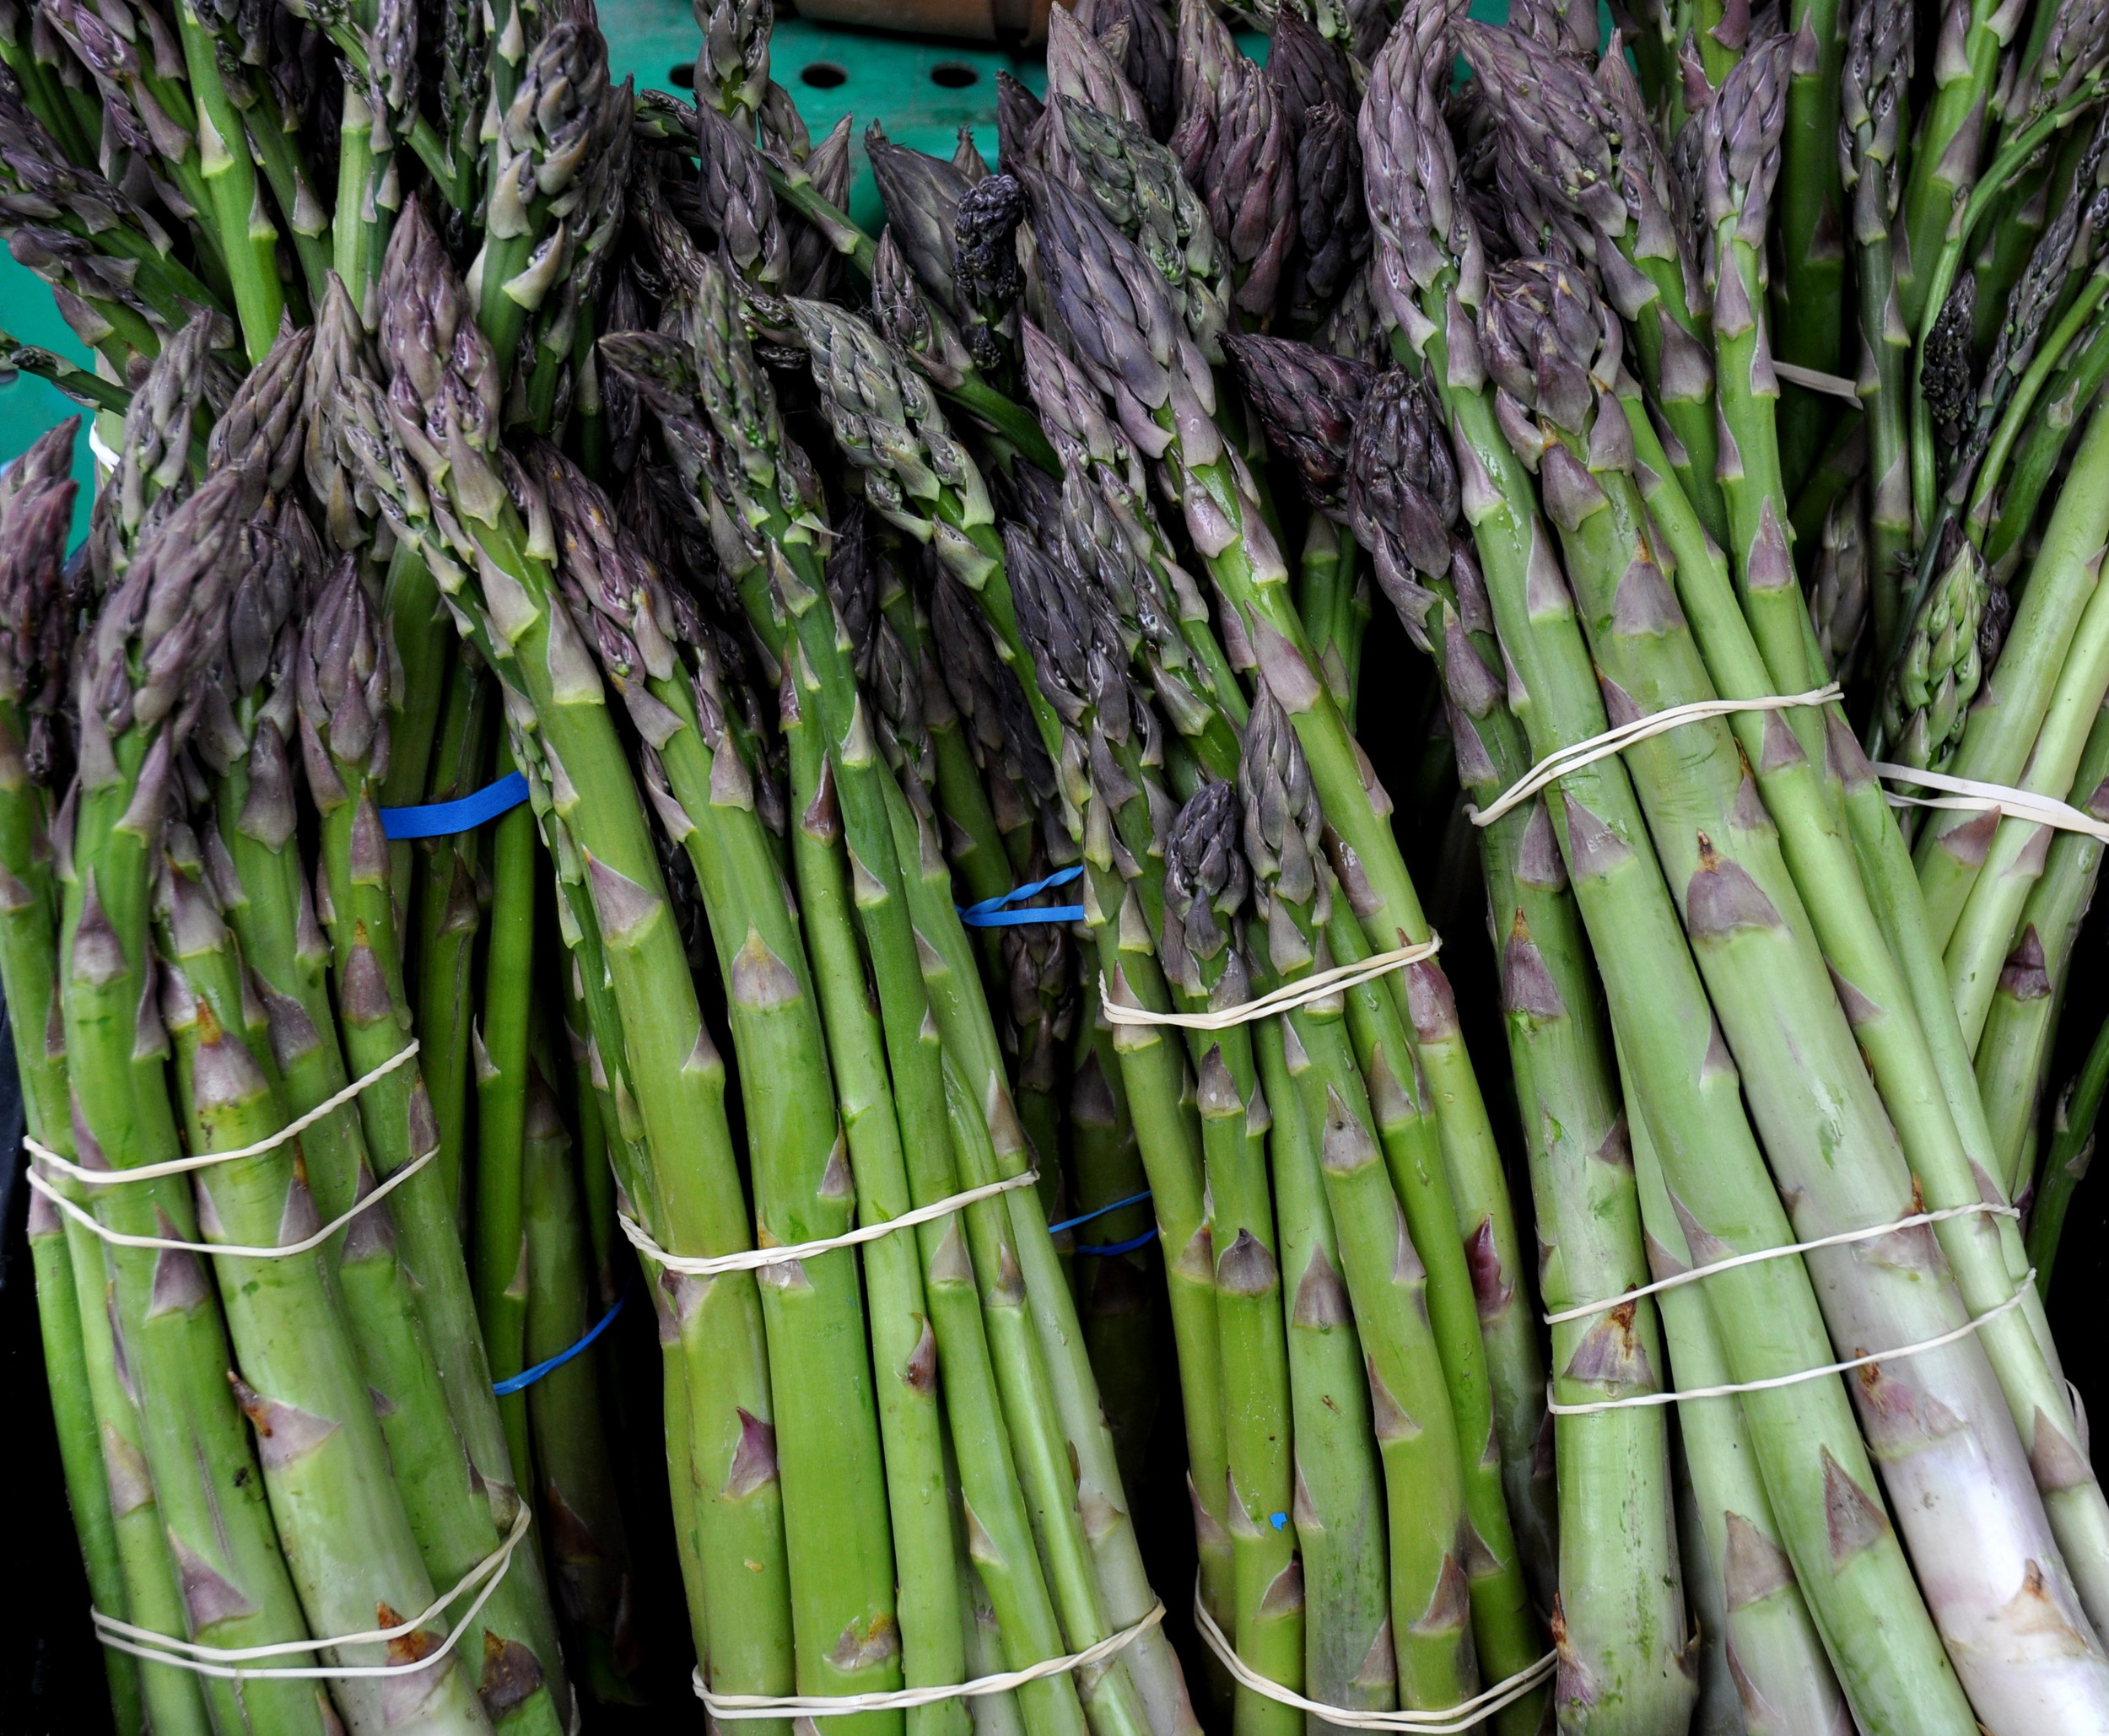 First of the year asparagus from Lyall Farms. Photo copyright 2013 by Zachary D. Lyons.